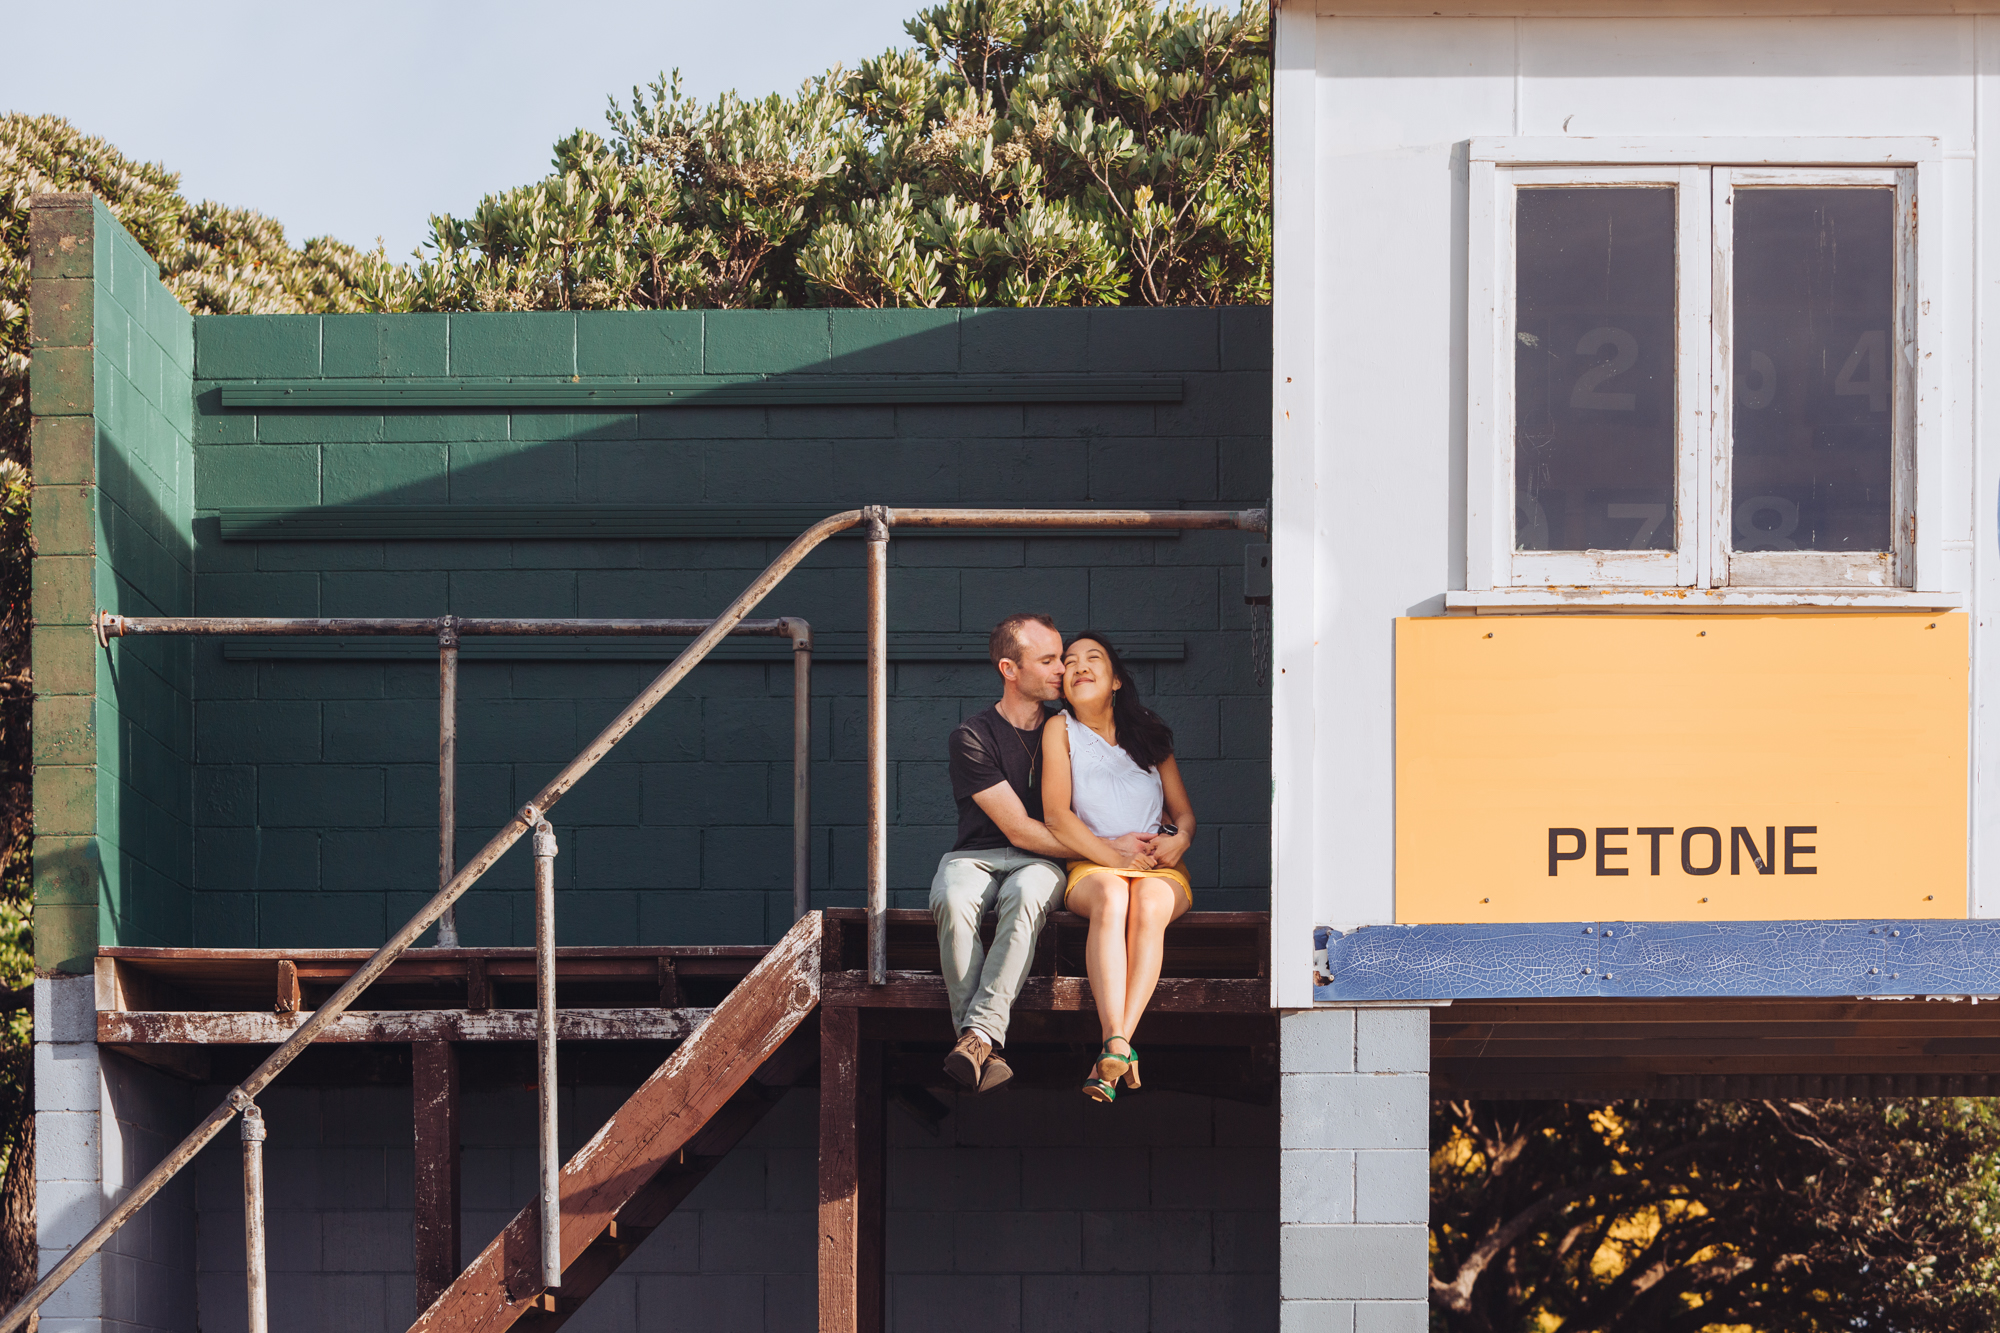 Image of Amanda and Derek taken by Alicia Scott Photographer at their Petone engagement session